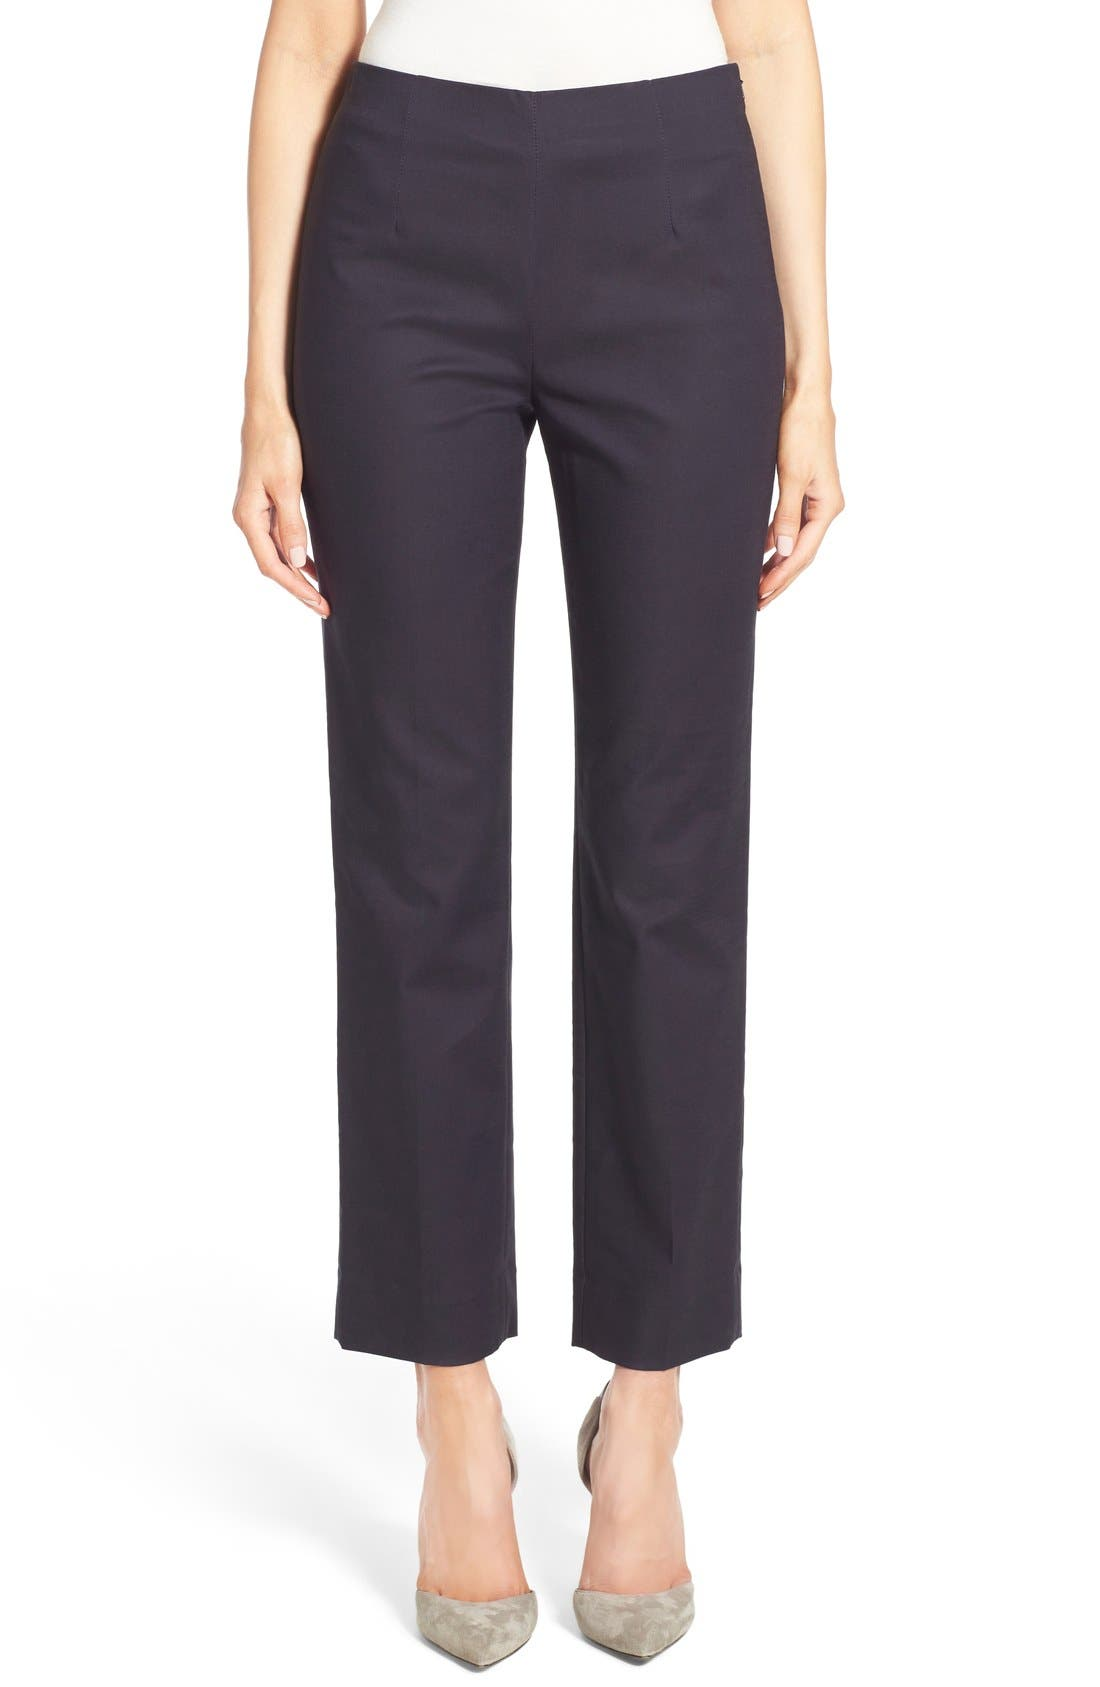 Alternate Image 1 Selected - NIC+ZOE 'Perfect' Side Zip Ankle Pants